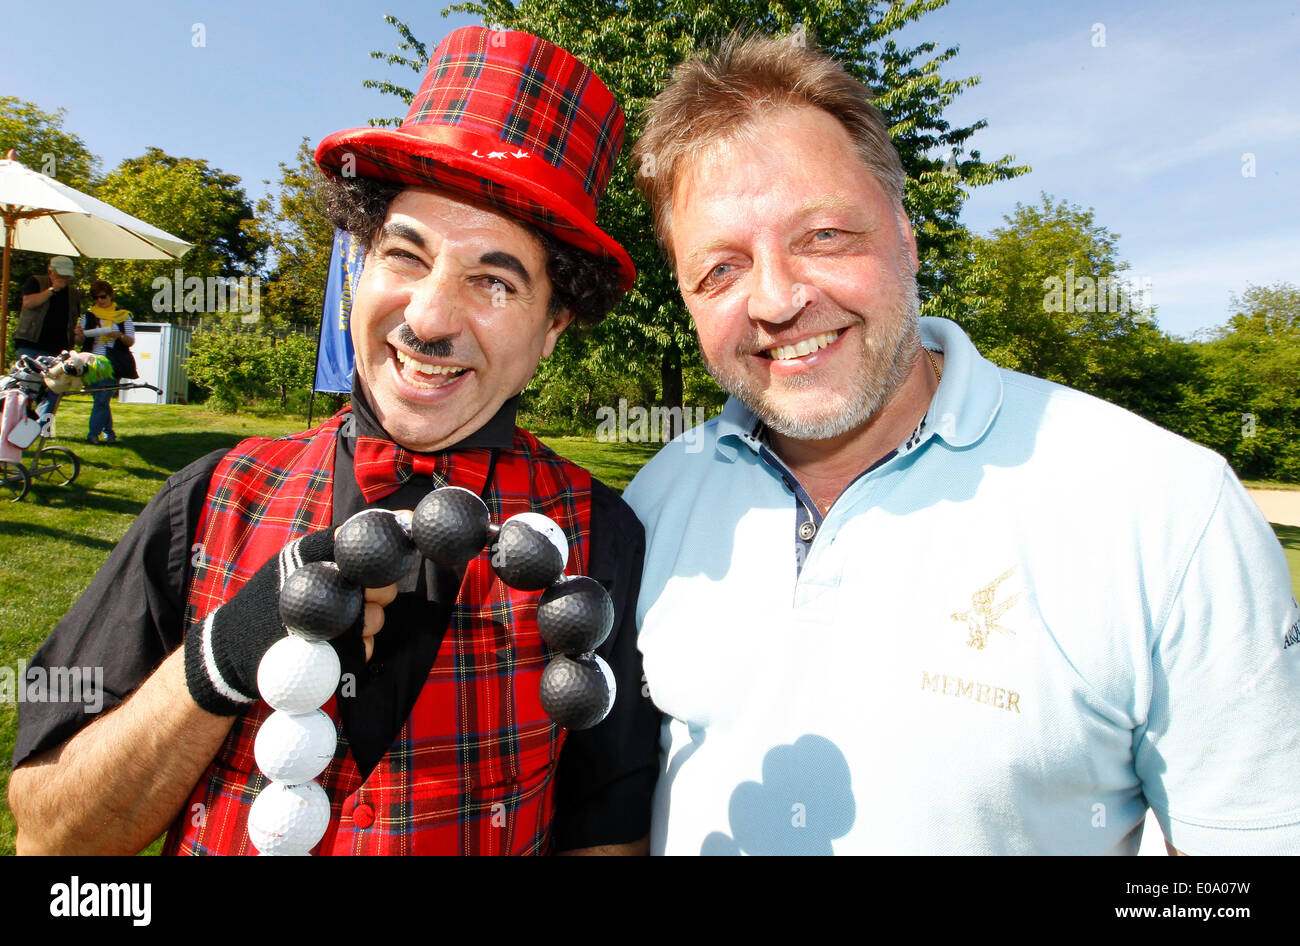 Herbolzheim, Germany - May 5, 2014: Eagles Charity Golf Cup and Gala at Golfclub Breisgau and Europa Park, Rust with Ski Cup Champion Jochen Behle and Charly Credit:  dpa picture alliance/Alamy Live News - Stock Image